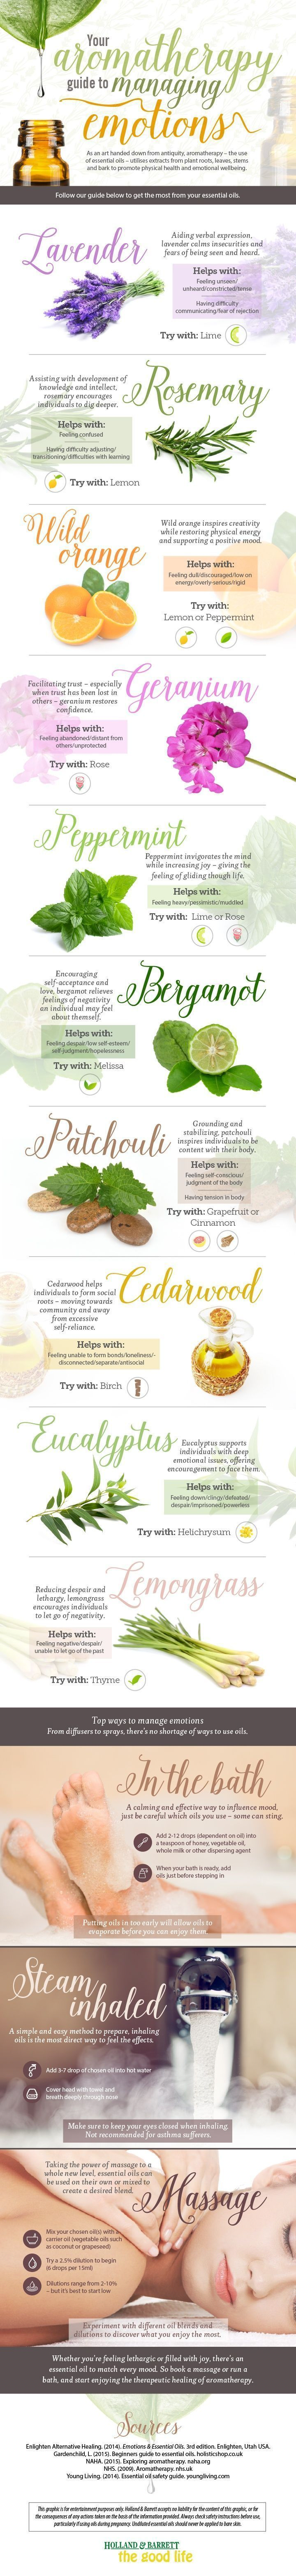 INFOGRAPHIC: Using aromatherapy to support your emotional health